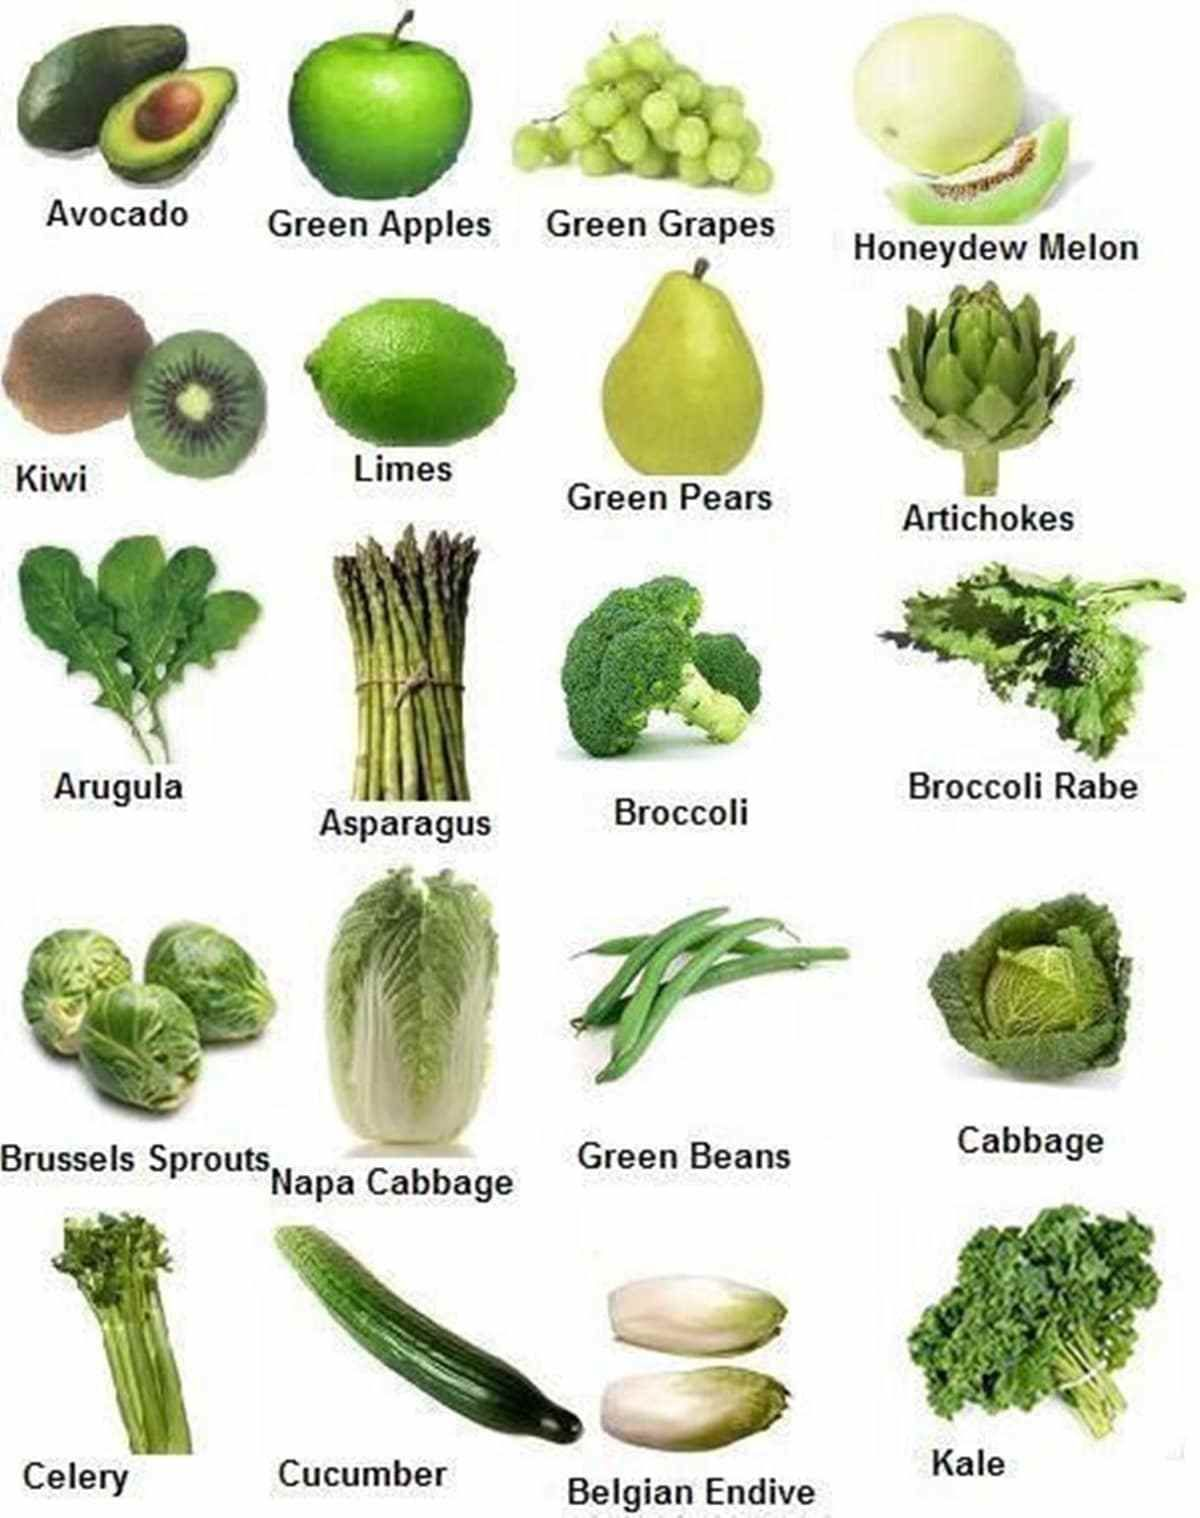 fruits and vegetables vocabulary in english | green grapes